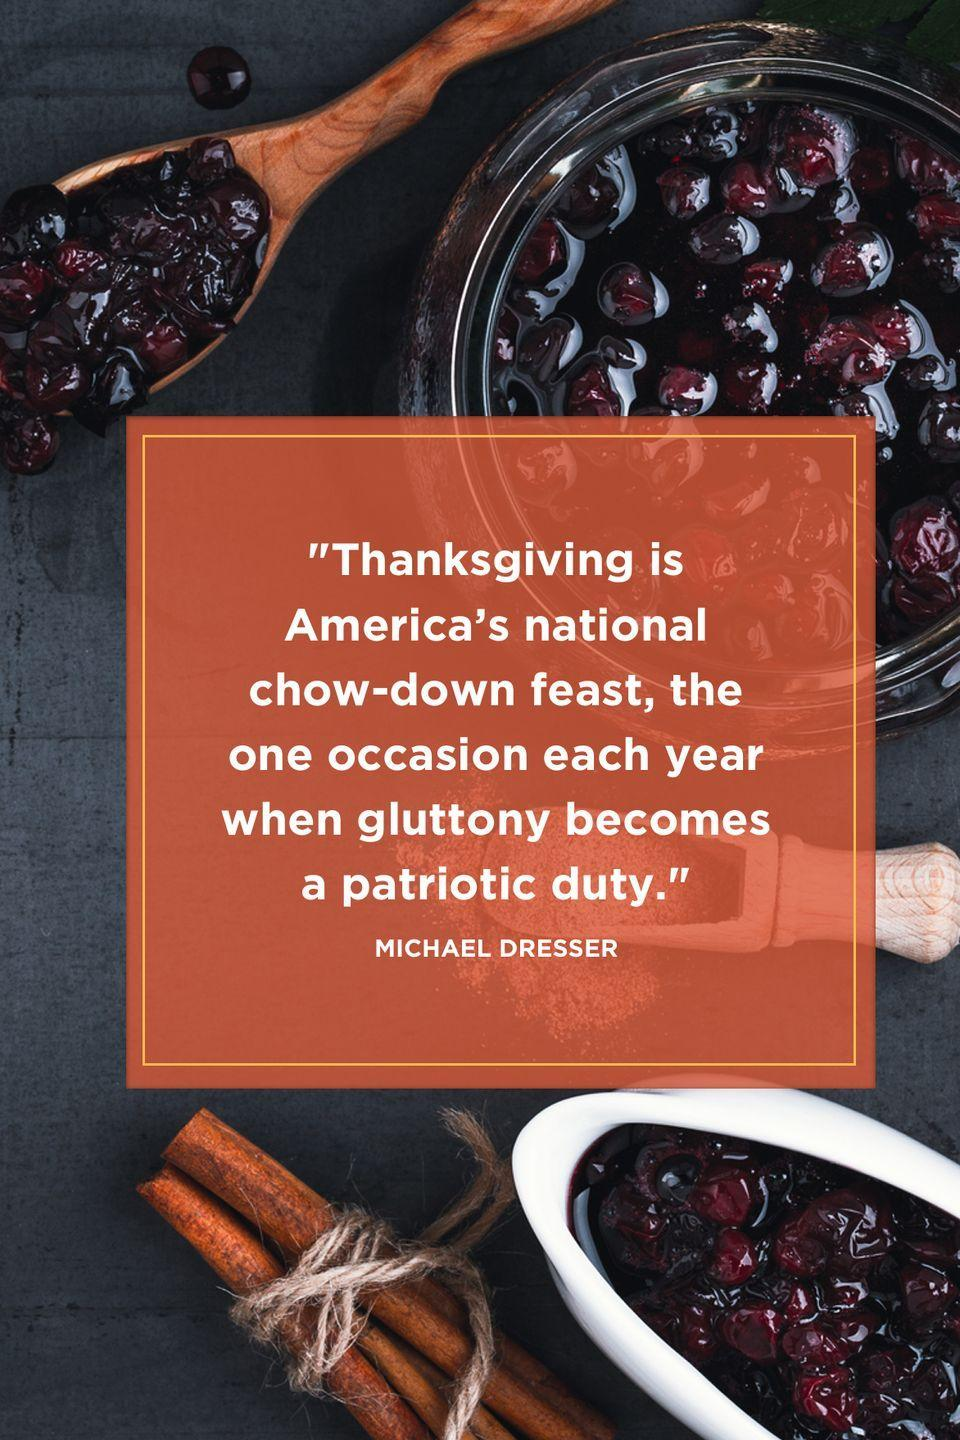 "<p>""Thanksgiving is America's national chow-down feast, the one occasion each year when gluttony becomes a patriotic duty.""</p>"